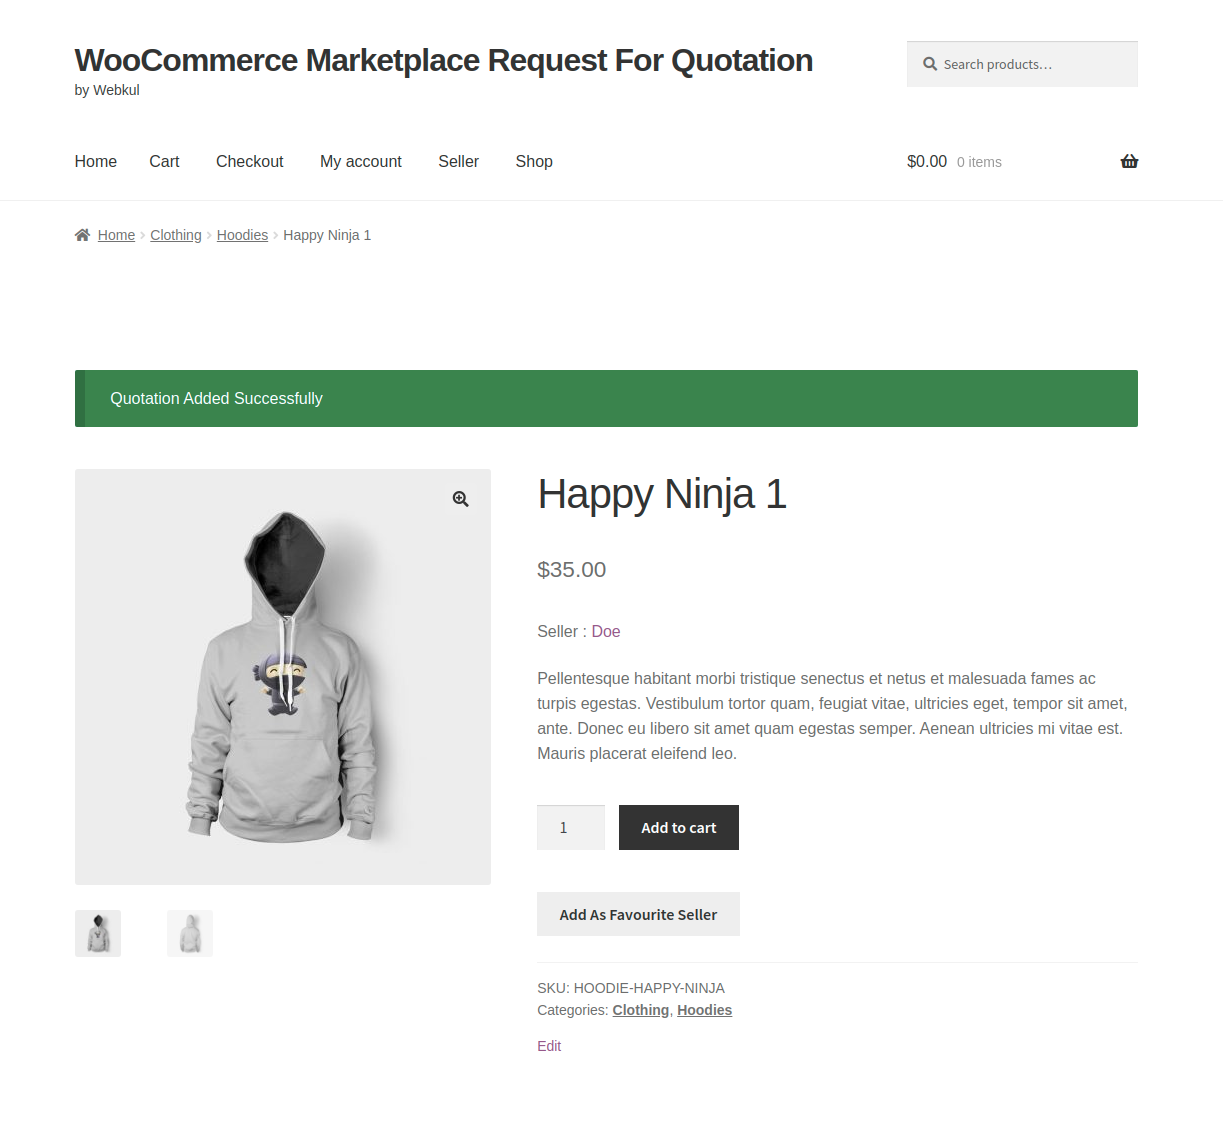 webkul-woocommerce-marketplace-request-for-quotation-customer-end-quote-added